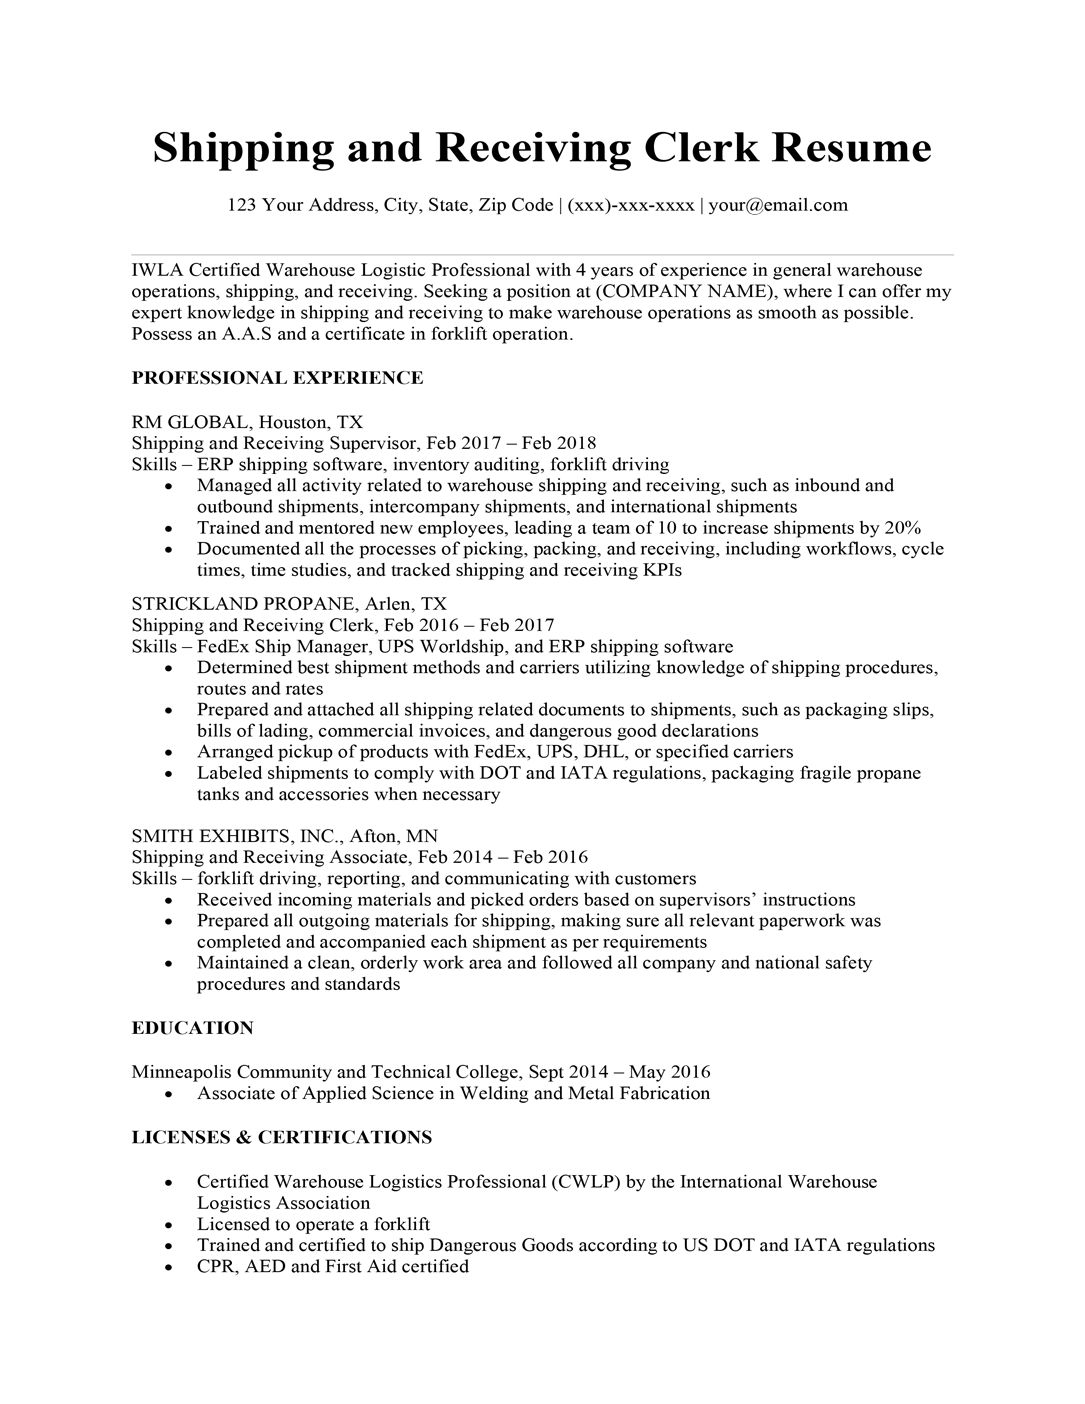 Shipping and receiving clerk resume sample